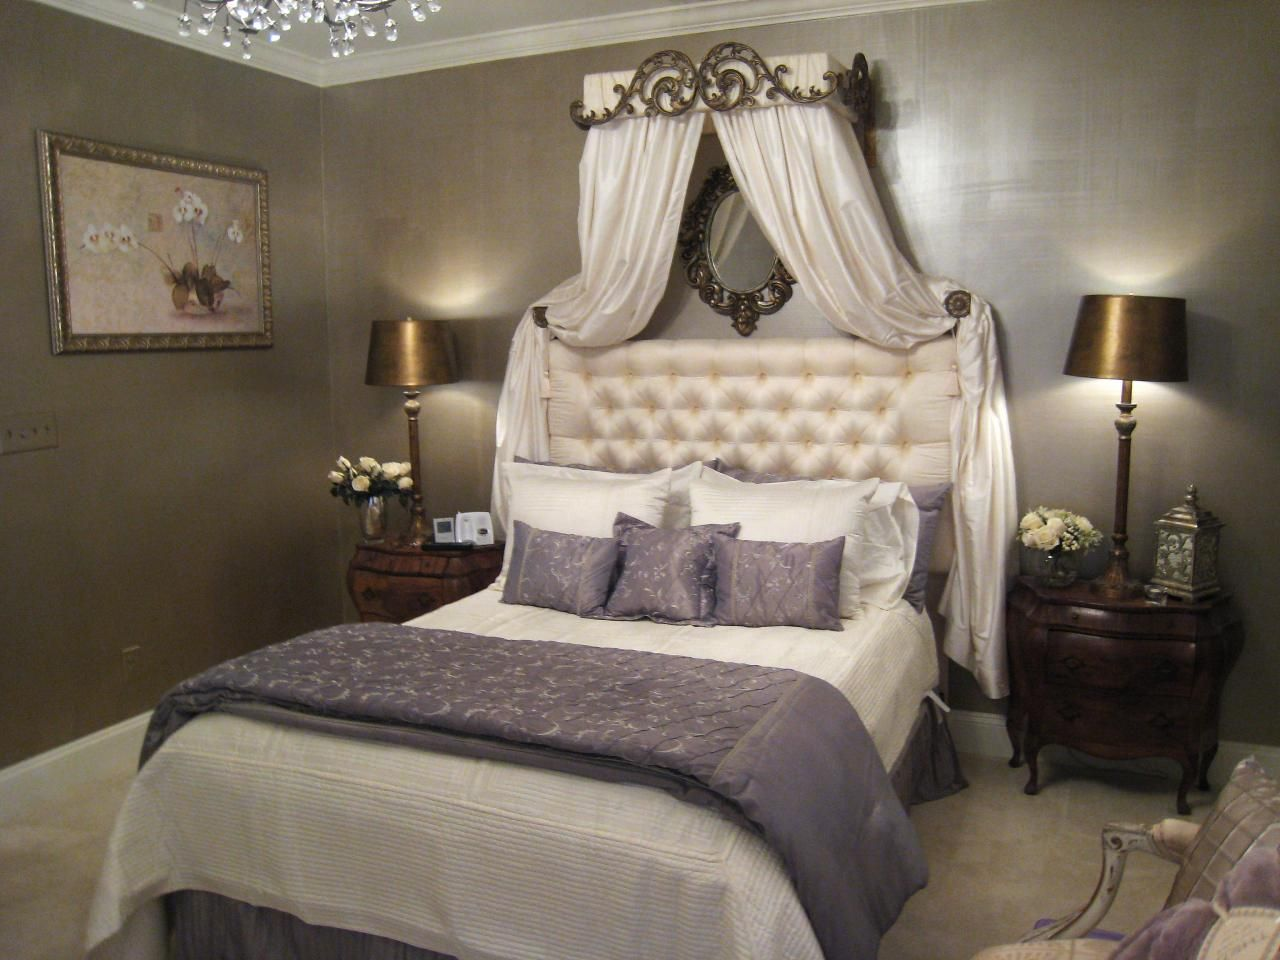 bed crown design ideas - Hgtv Master Bedroom Decorating Ideas